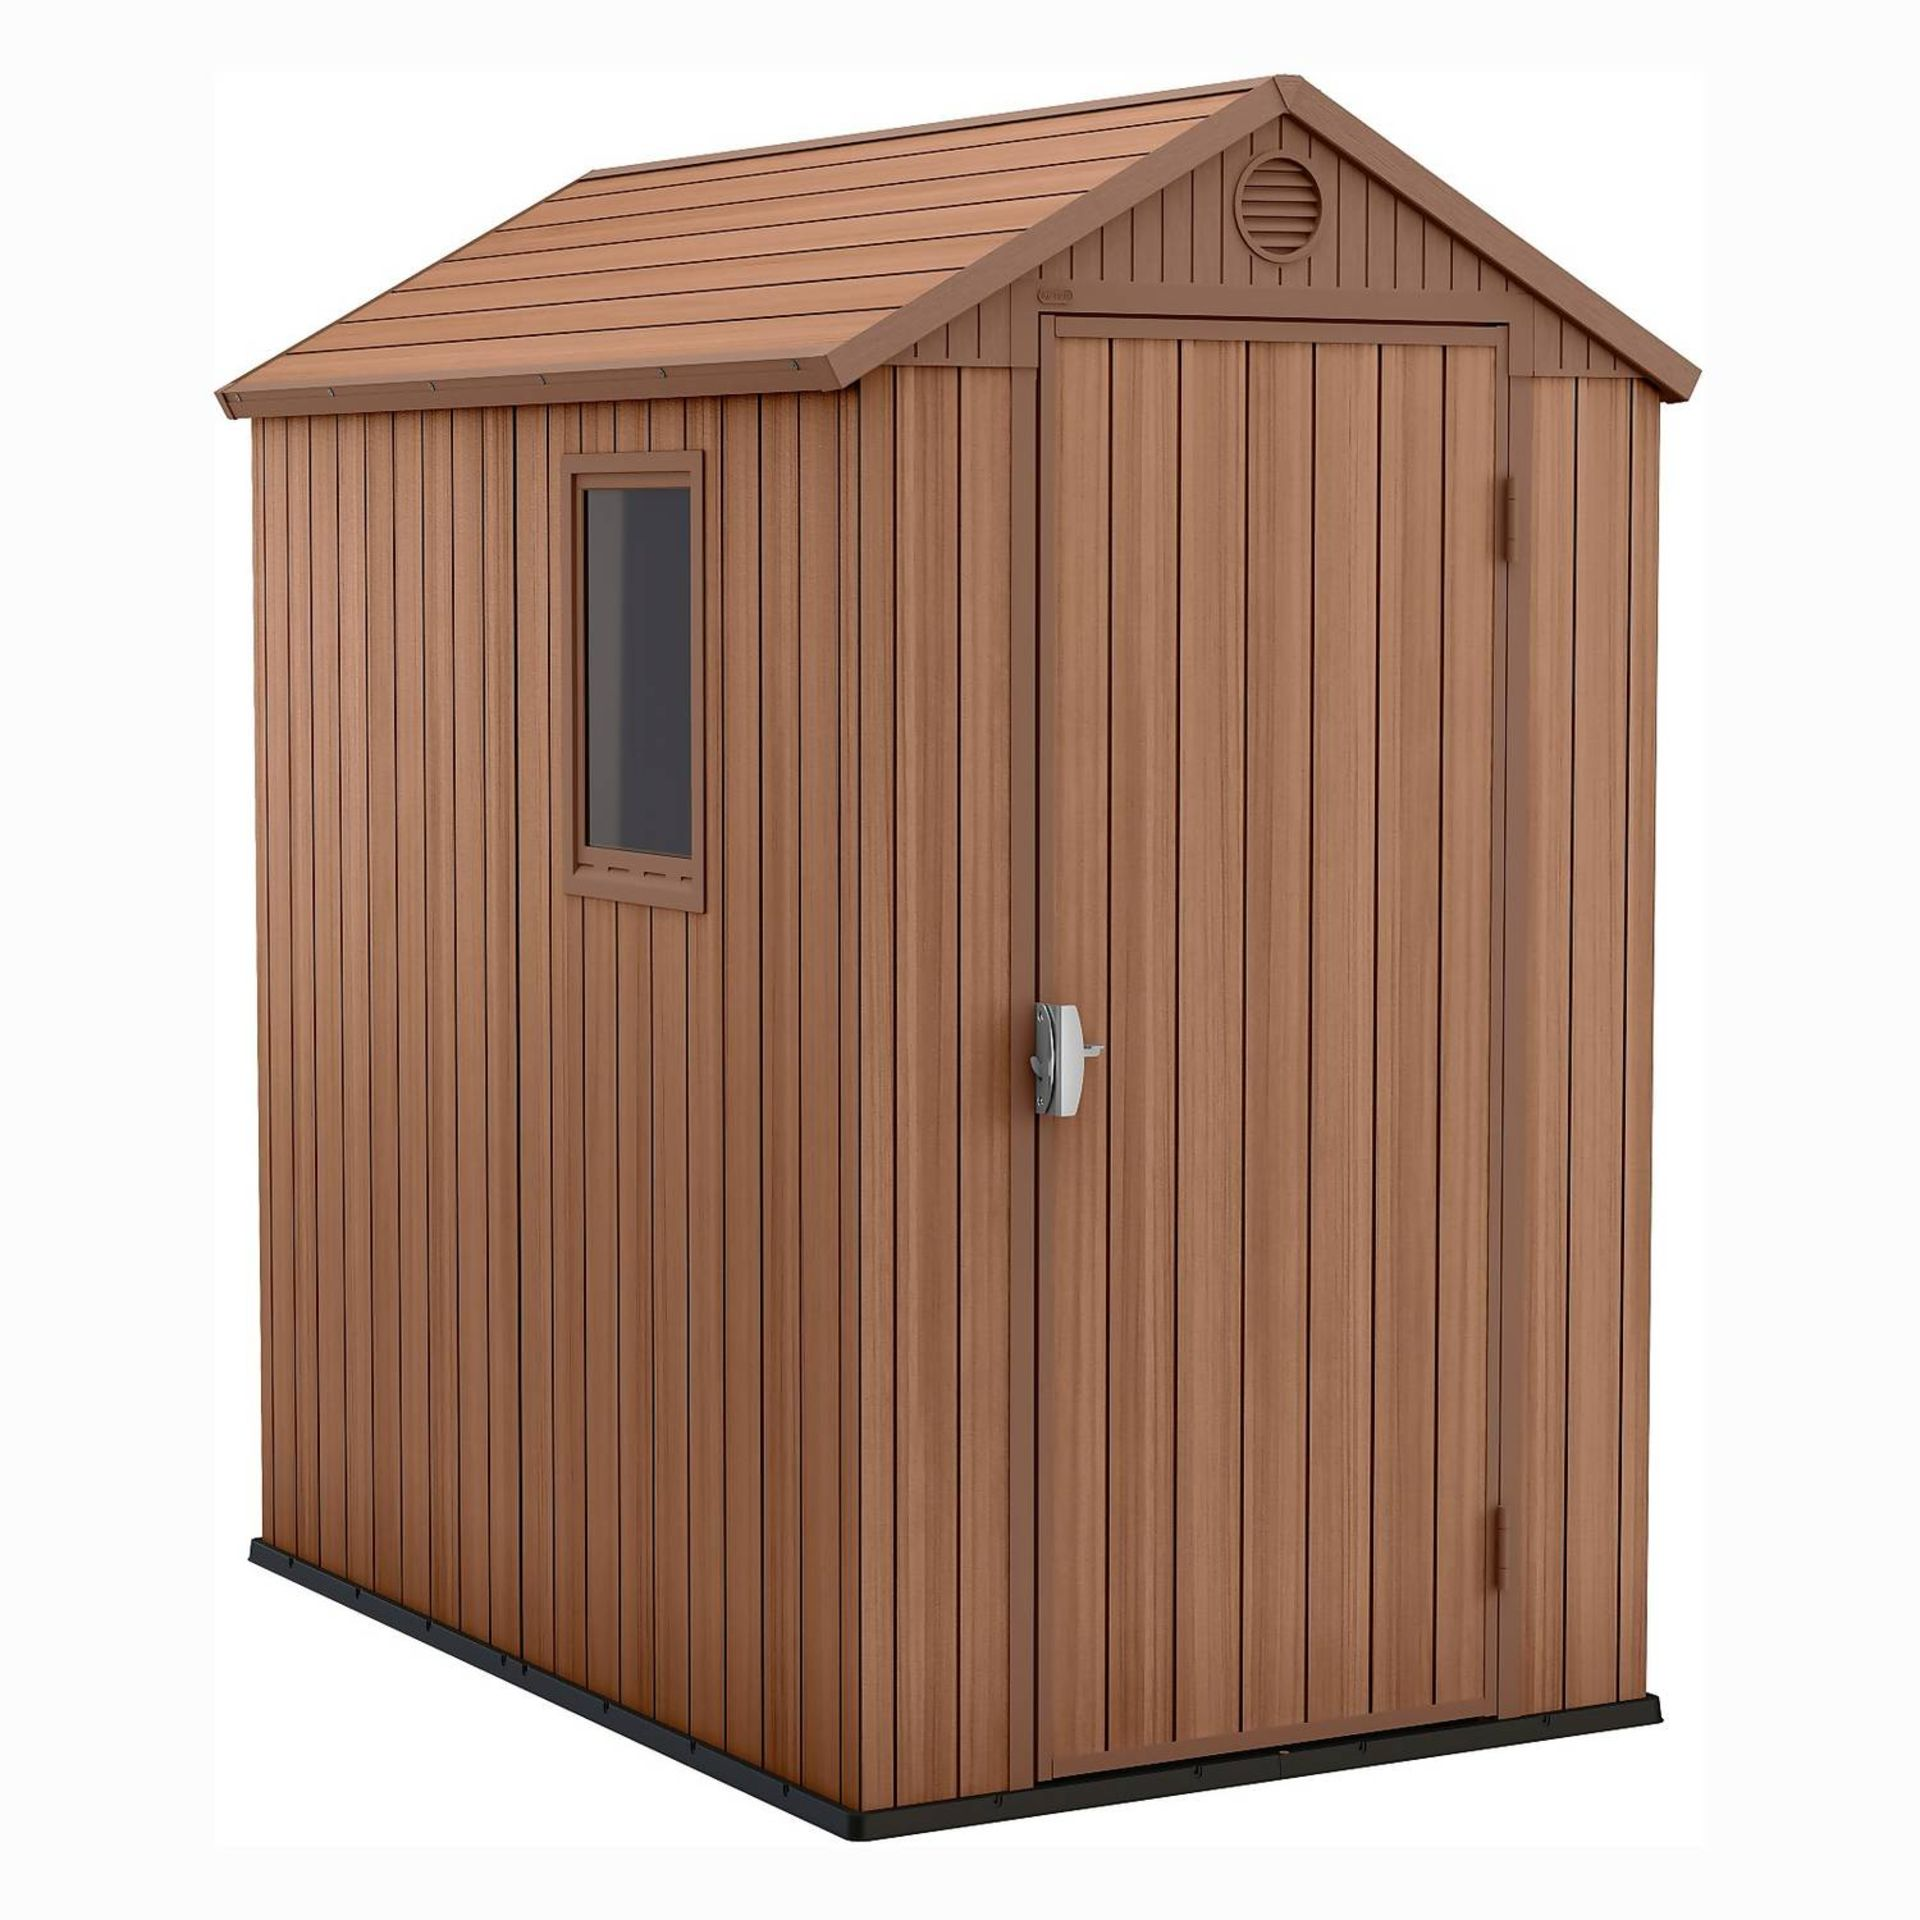 Mixed Double pallet of Home & Garden products. Approx RRP £988 - Image 2 of 6